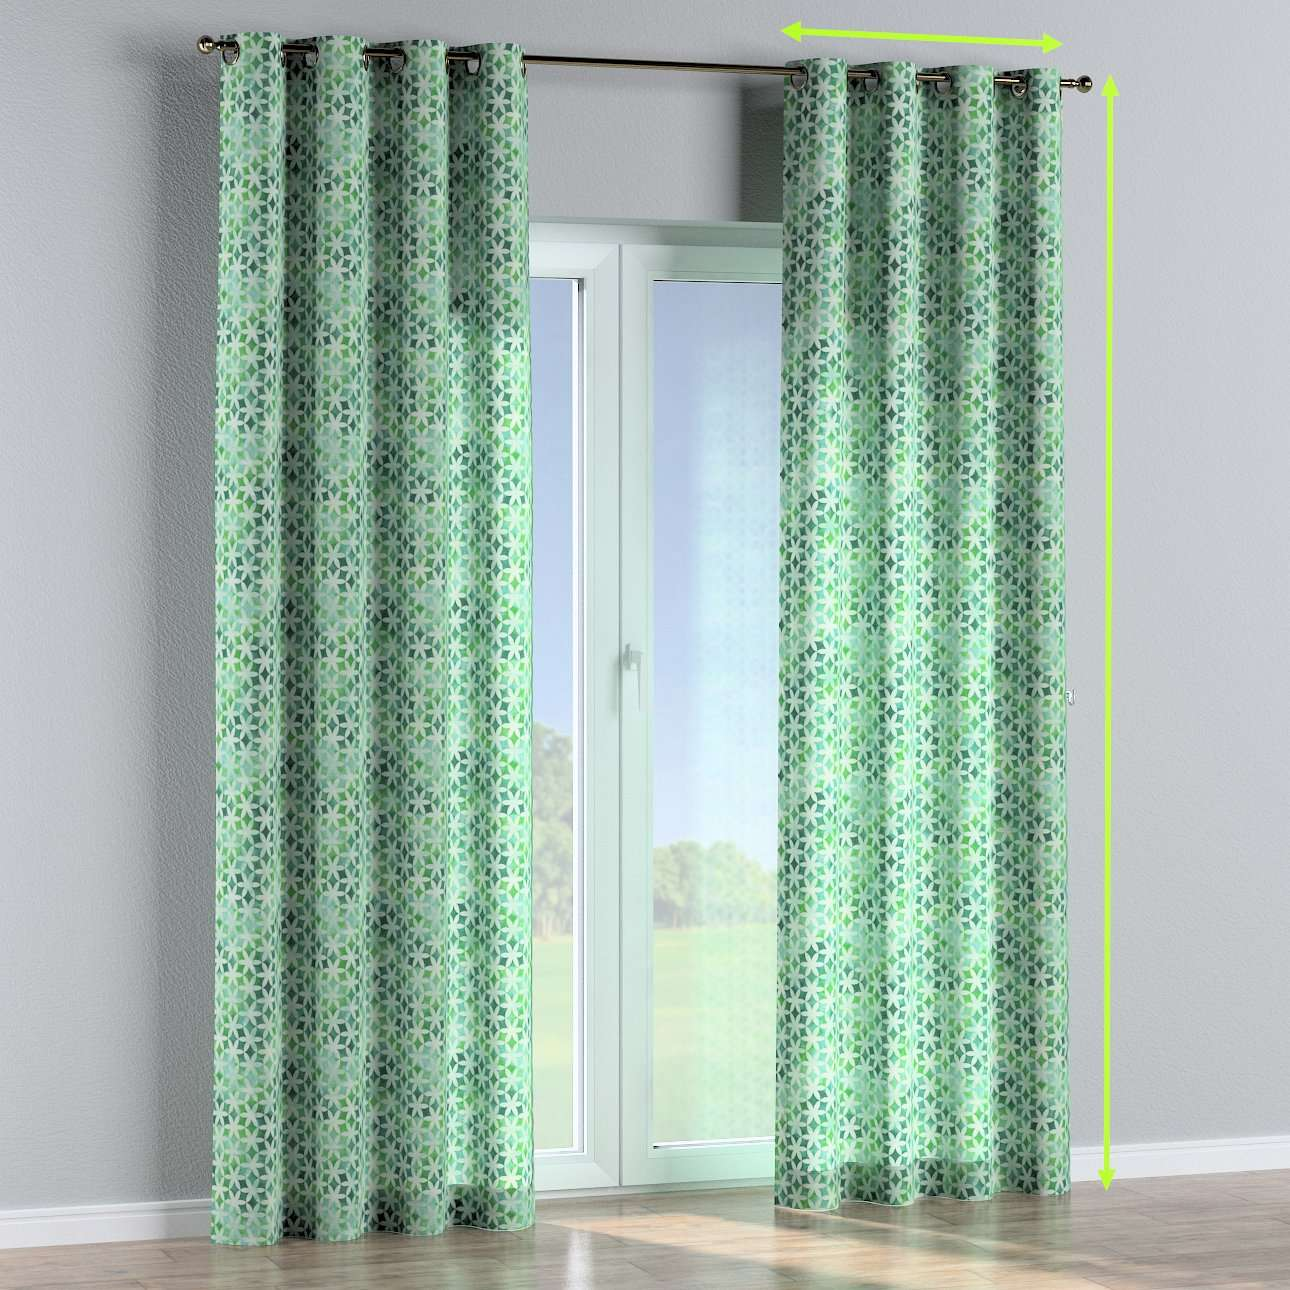 Eyelet curtain in collection SALE, fabric: 141-65